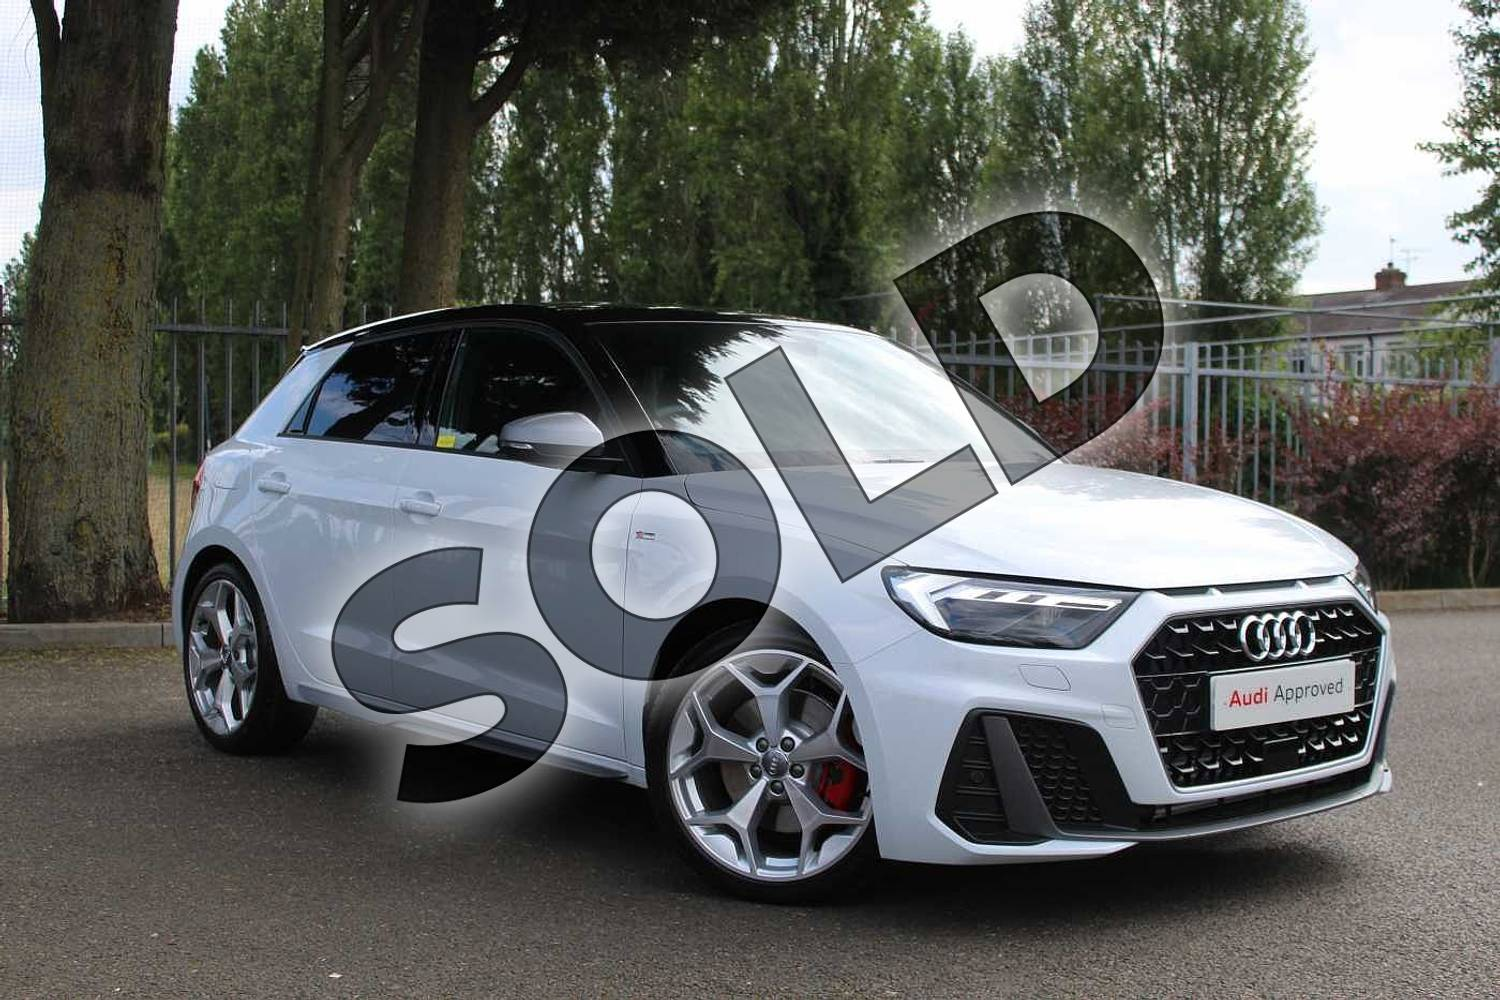 2019 Audi A1 Sportback 40 TFSI S Line Competition 5dr S Tronic in Glacier White Metallic at Coventry Audi